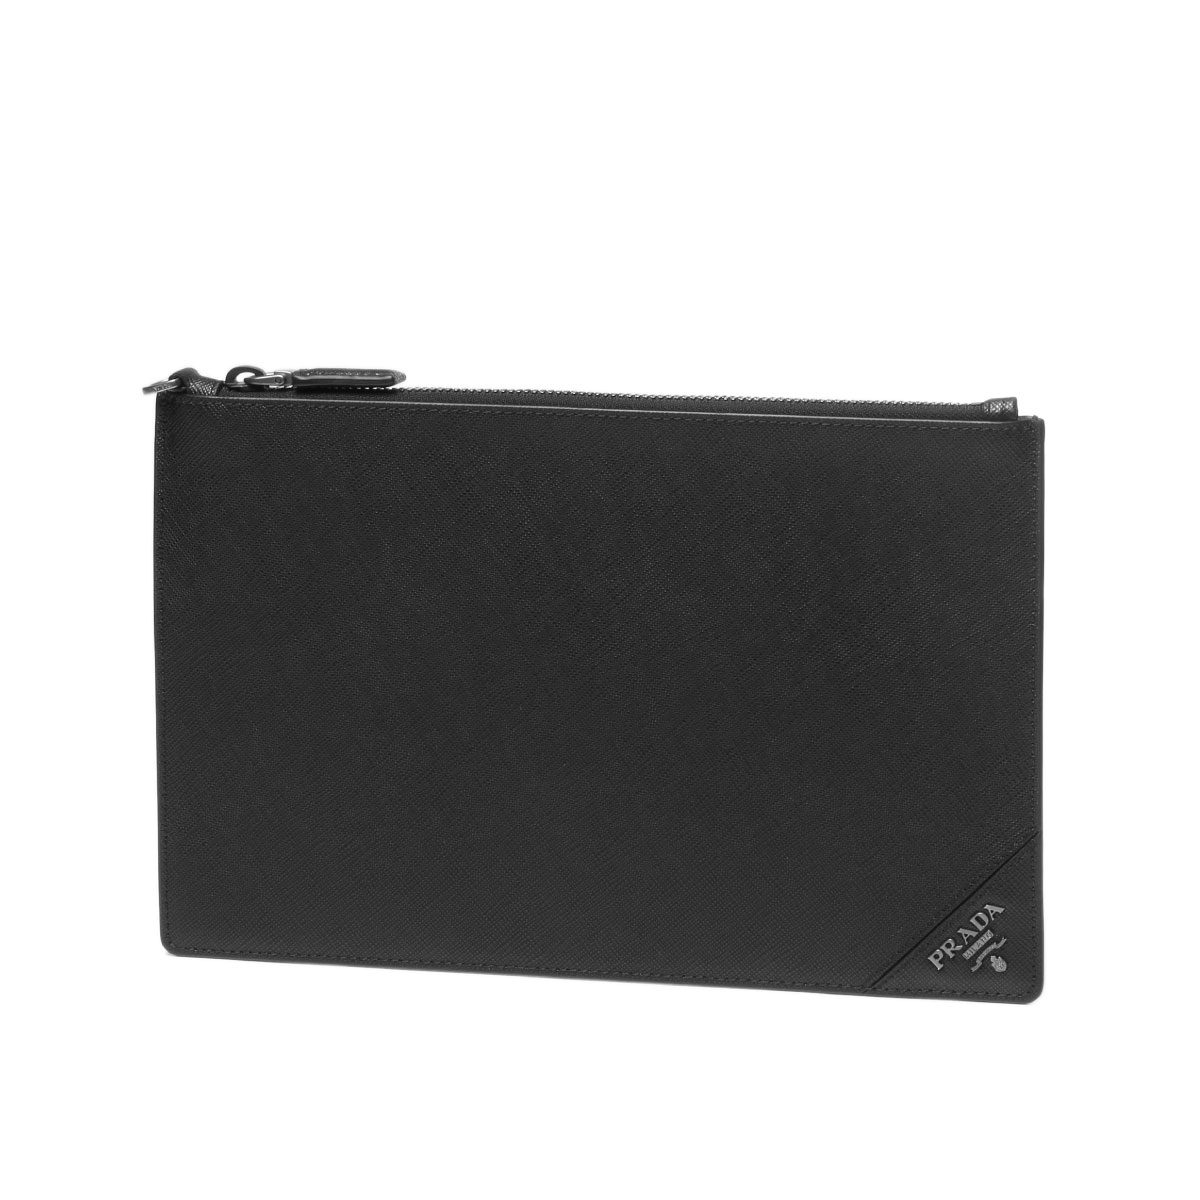 importshopdouble  Prada PRADA bag men 2NG005 QME F0002 clutch bag ... 11a369cd06920